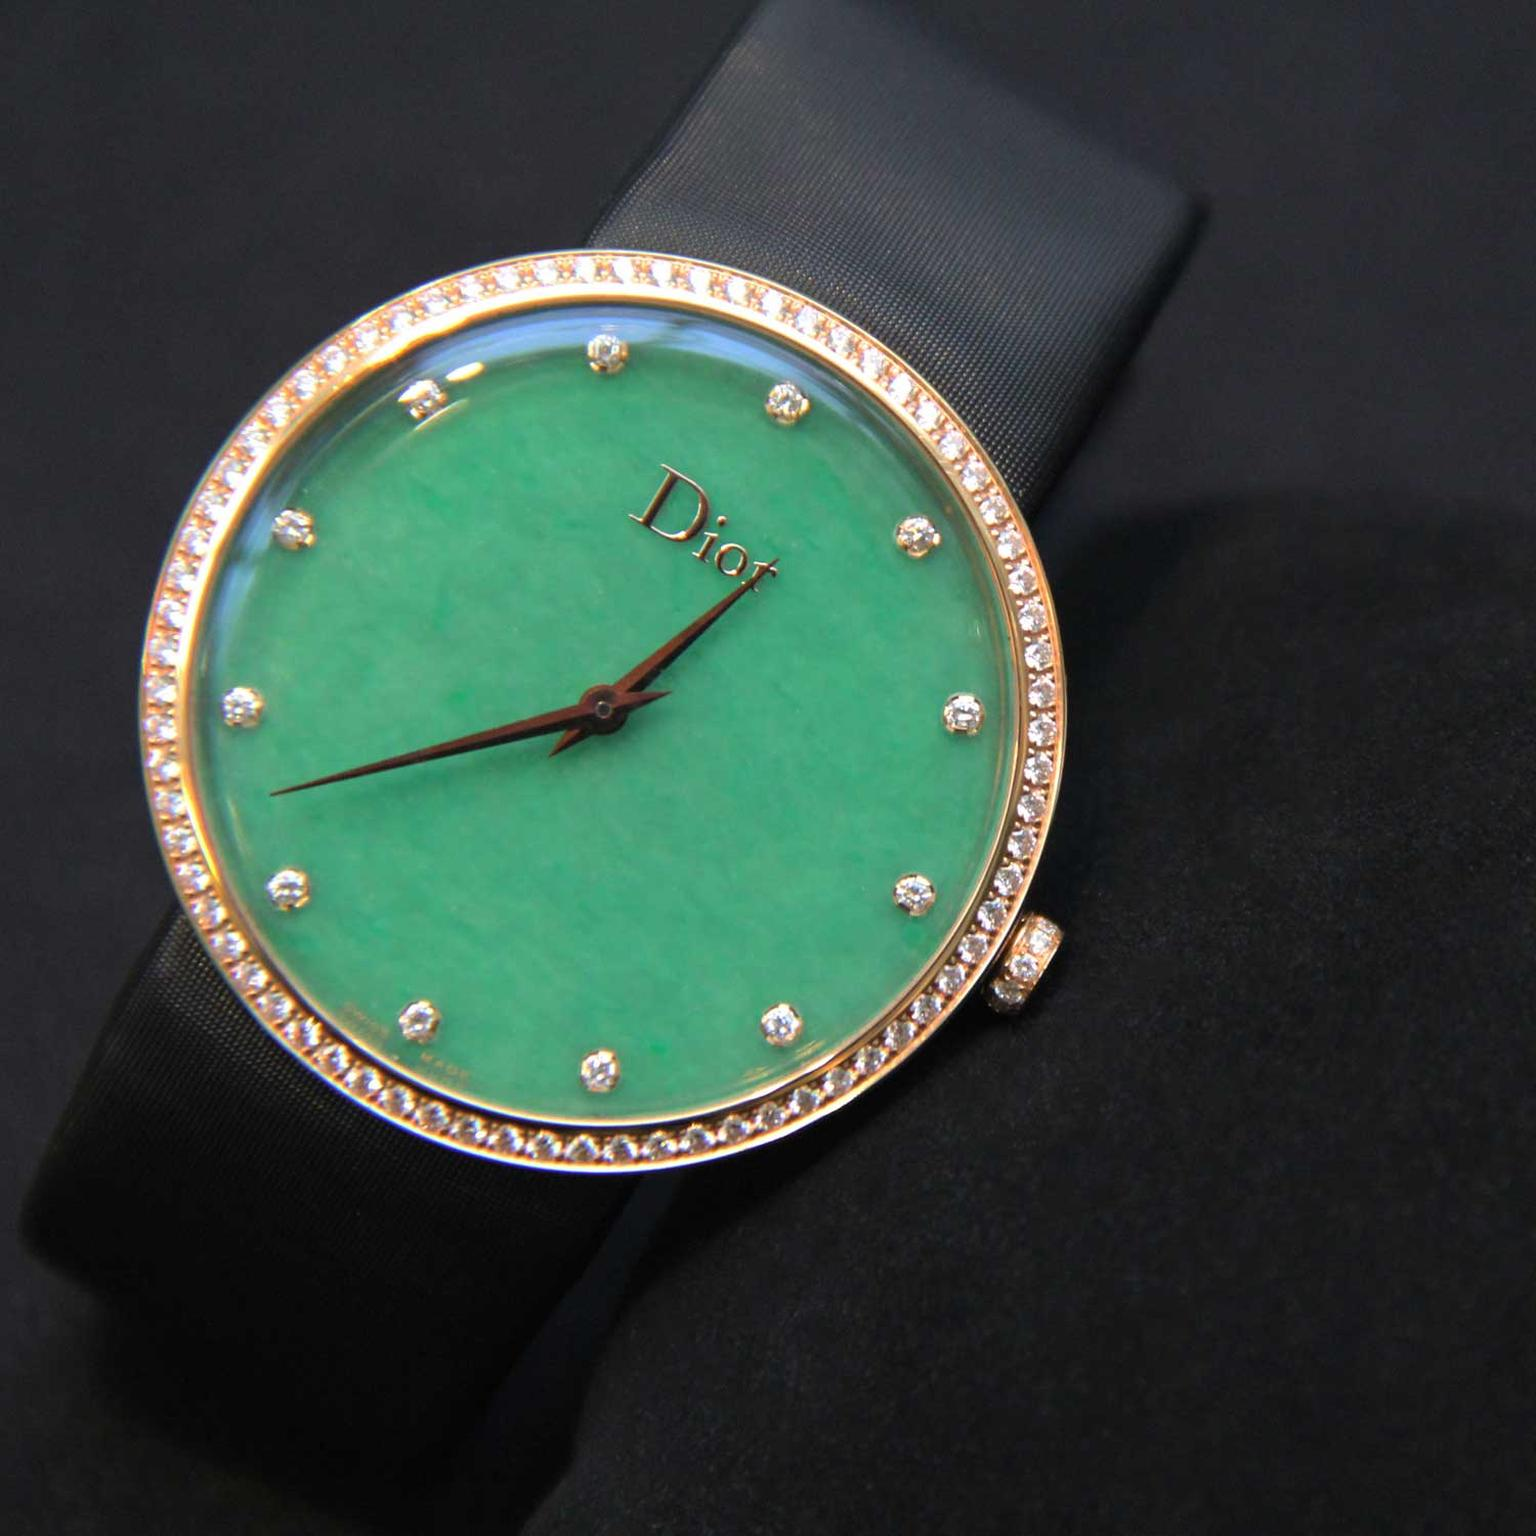 La D de Dior watch with jade dial